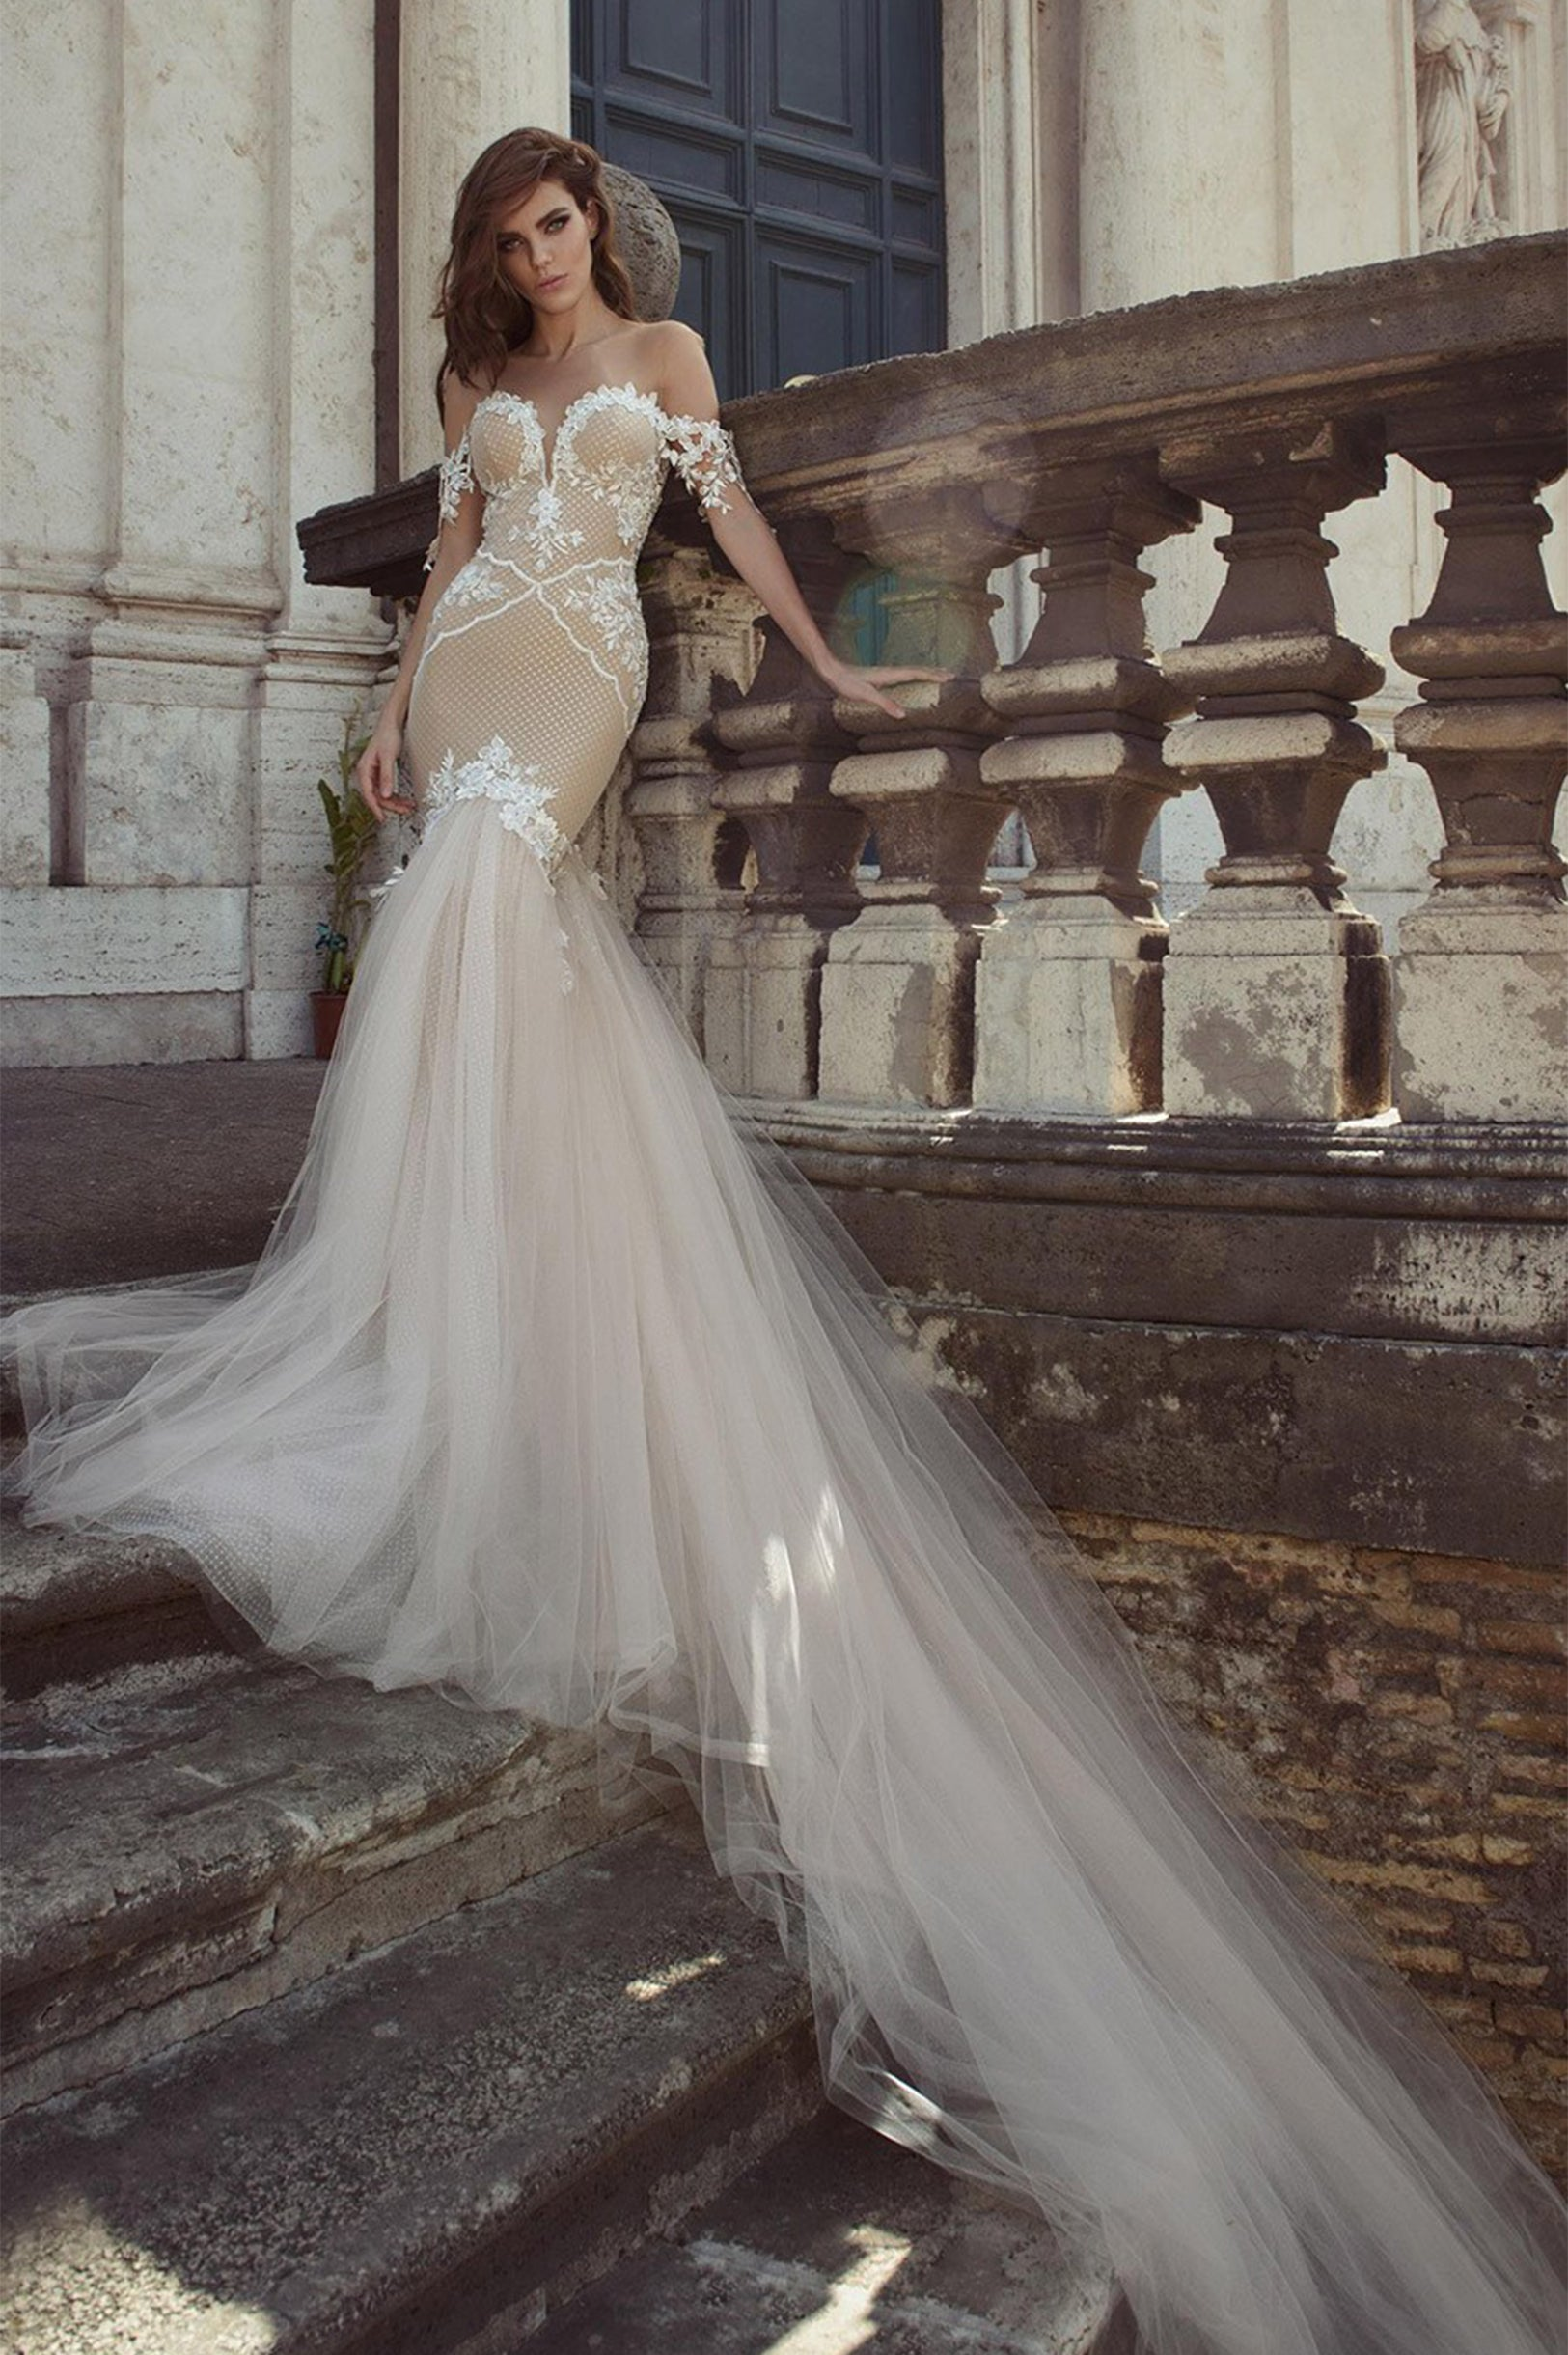 Sylvia Sheer Mermaid Wedding Dress - The Lovely Find